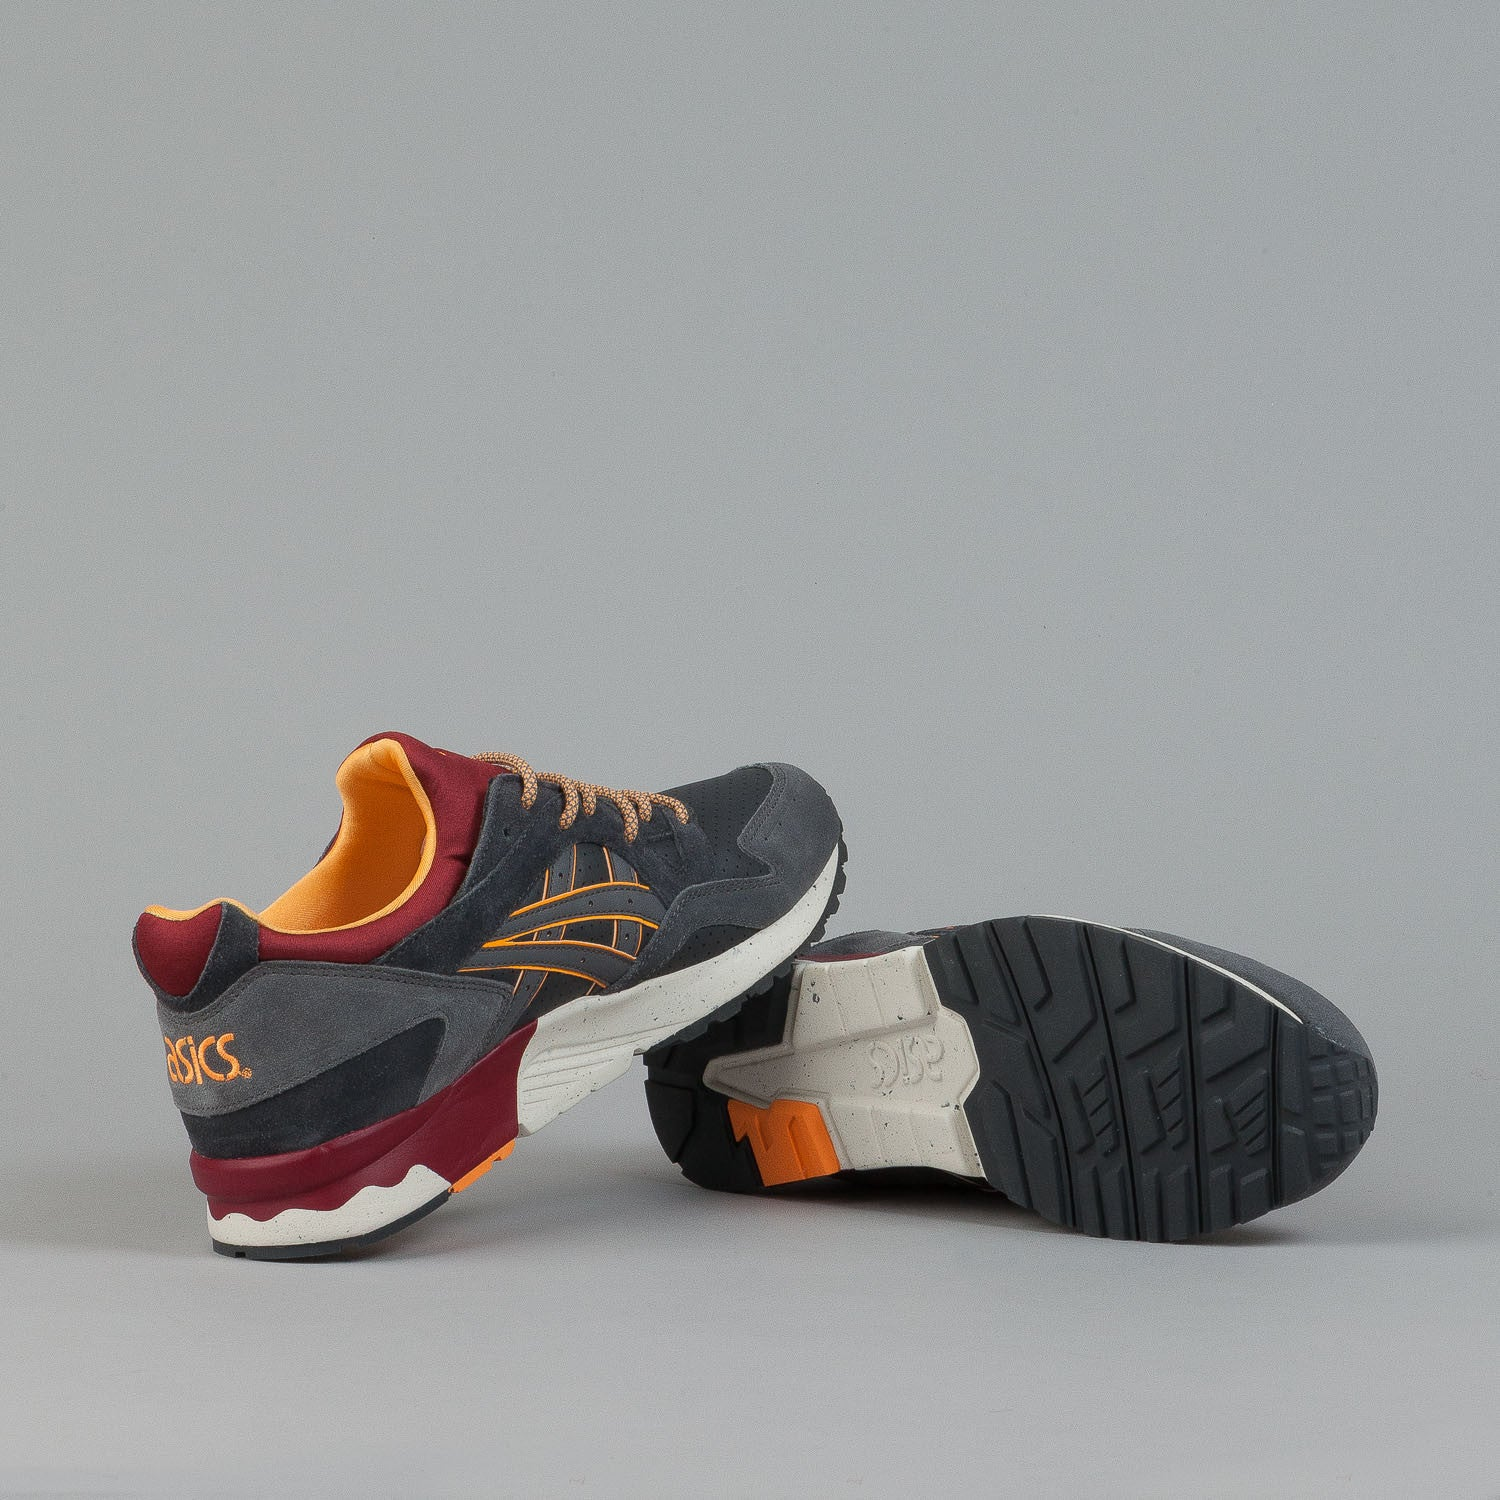 Asics Gel Lyte V Shoes 'Outdoor' - Dark Grey / Grey